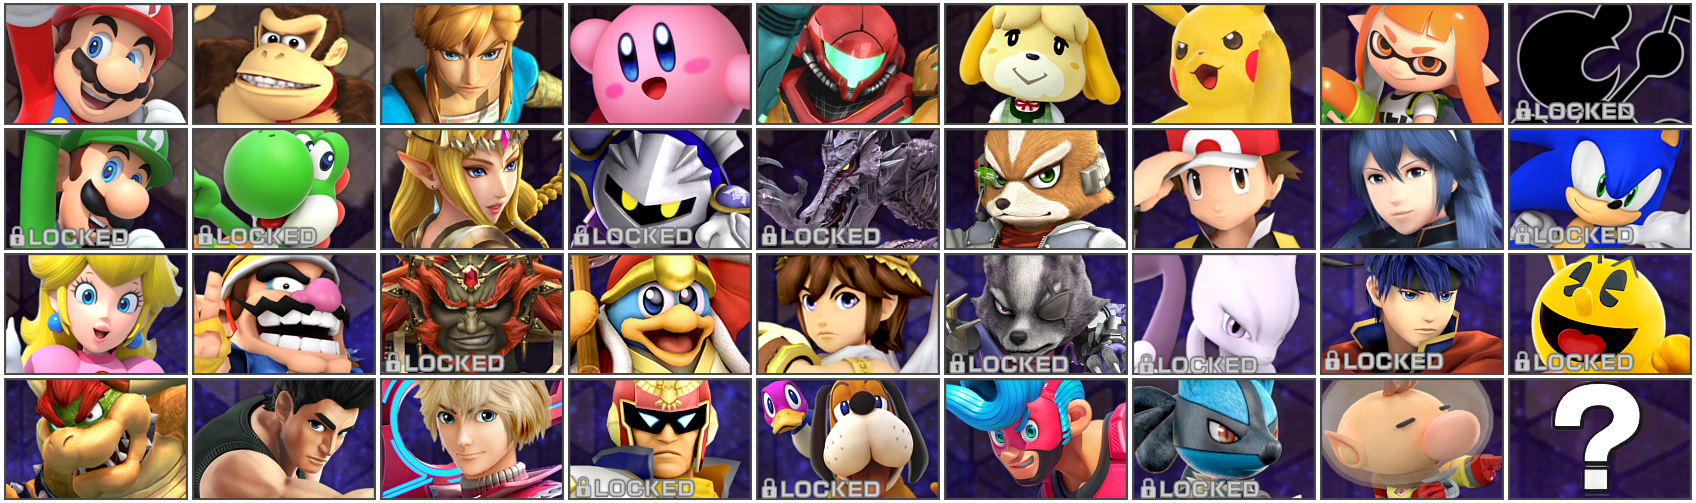 SmashRoster35Characters.png